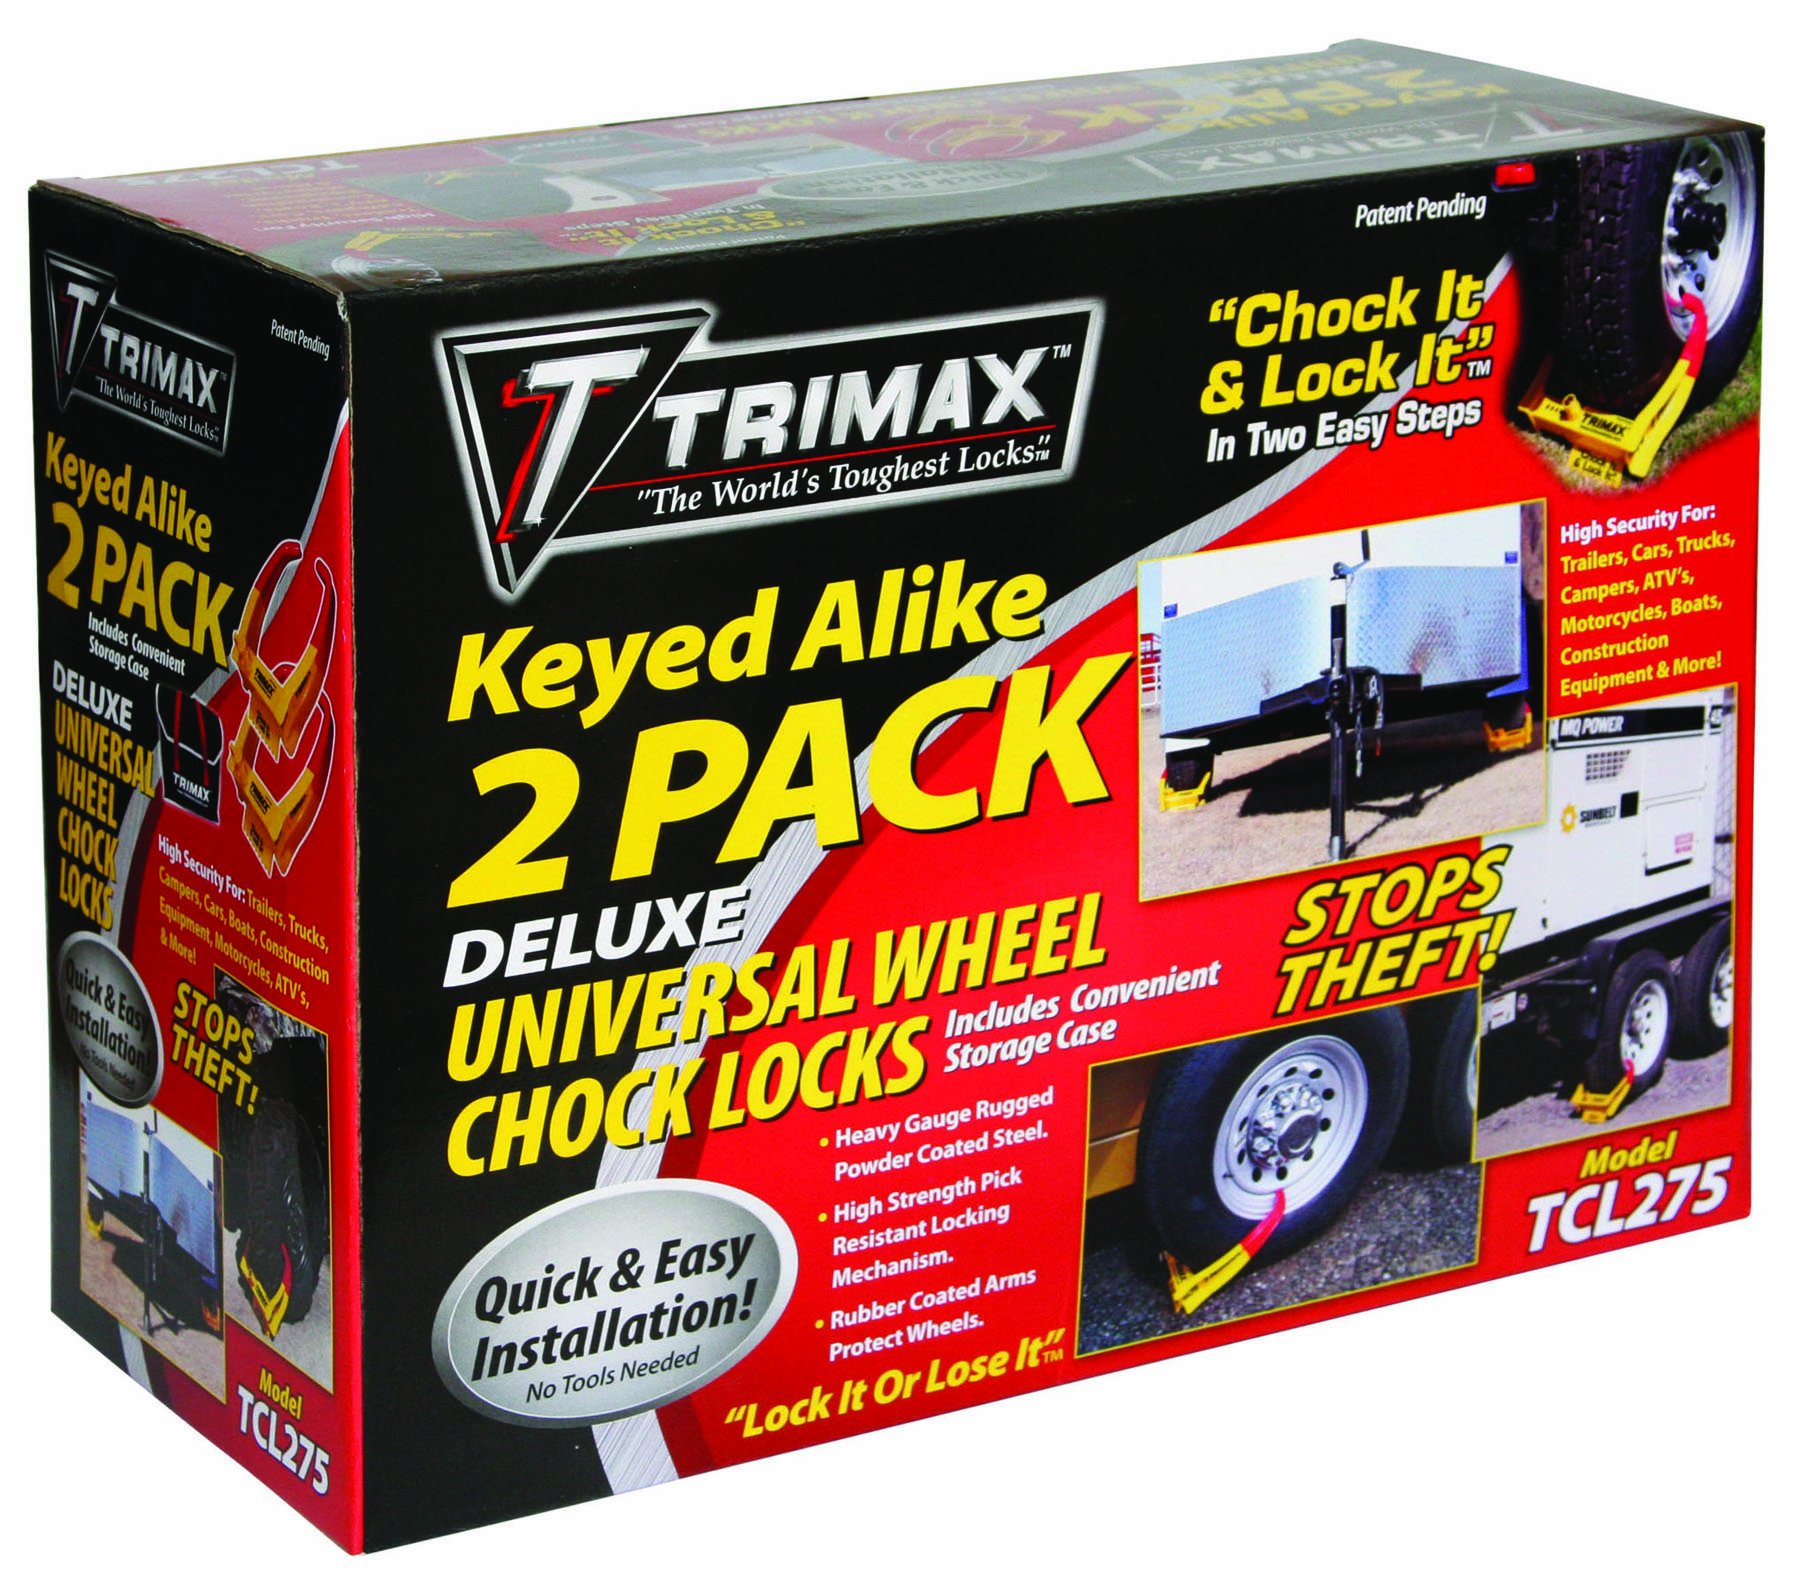 Trimax TCL275 Wheel Chock Lock, 2 Pack by Trimax